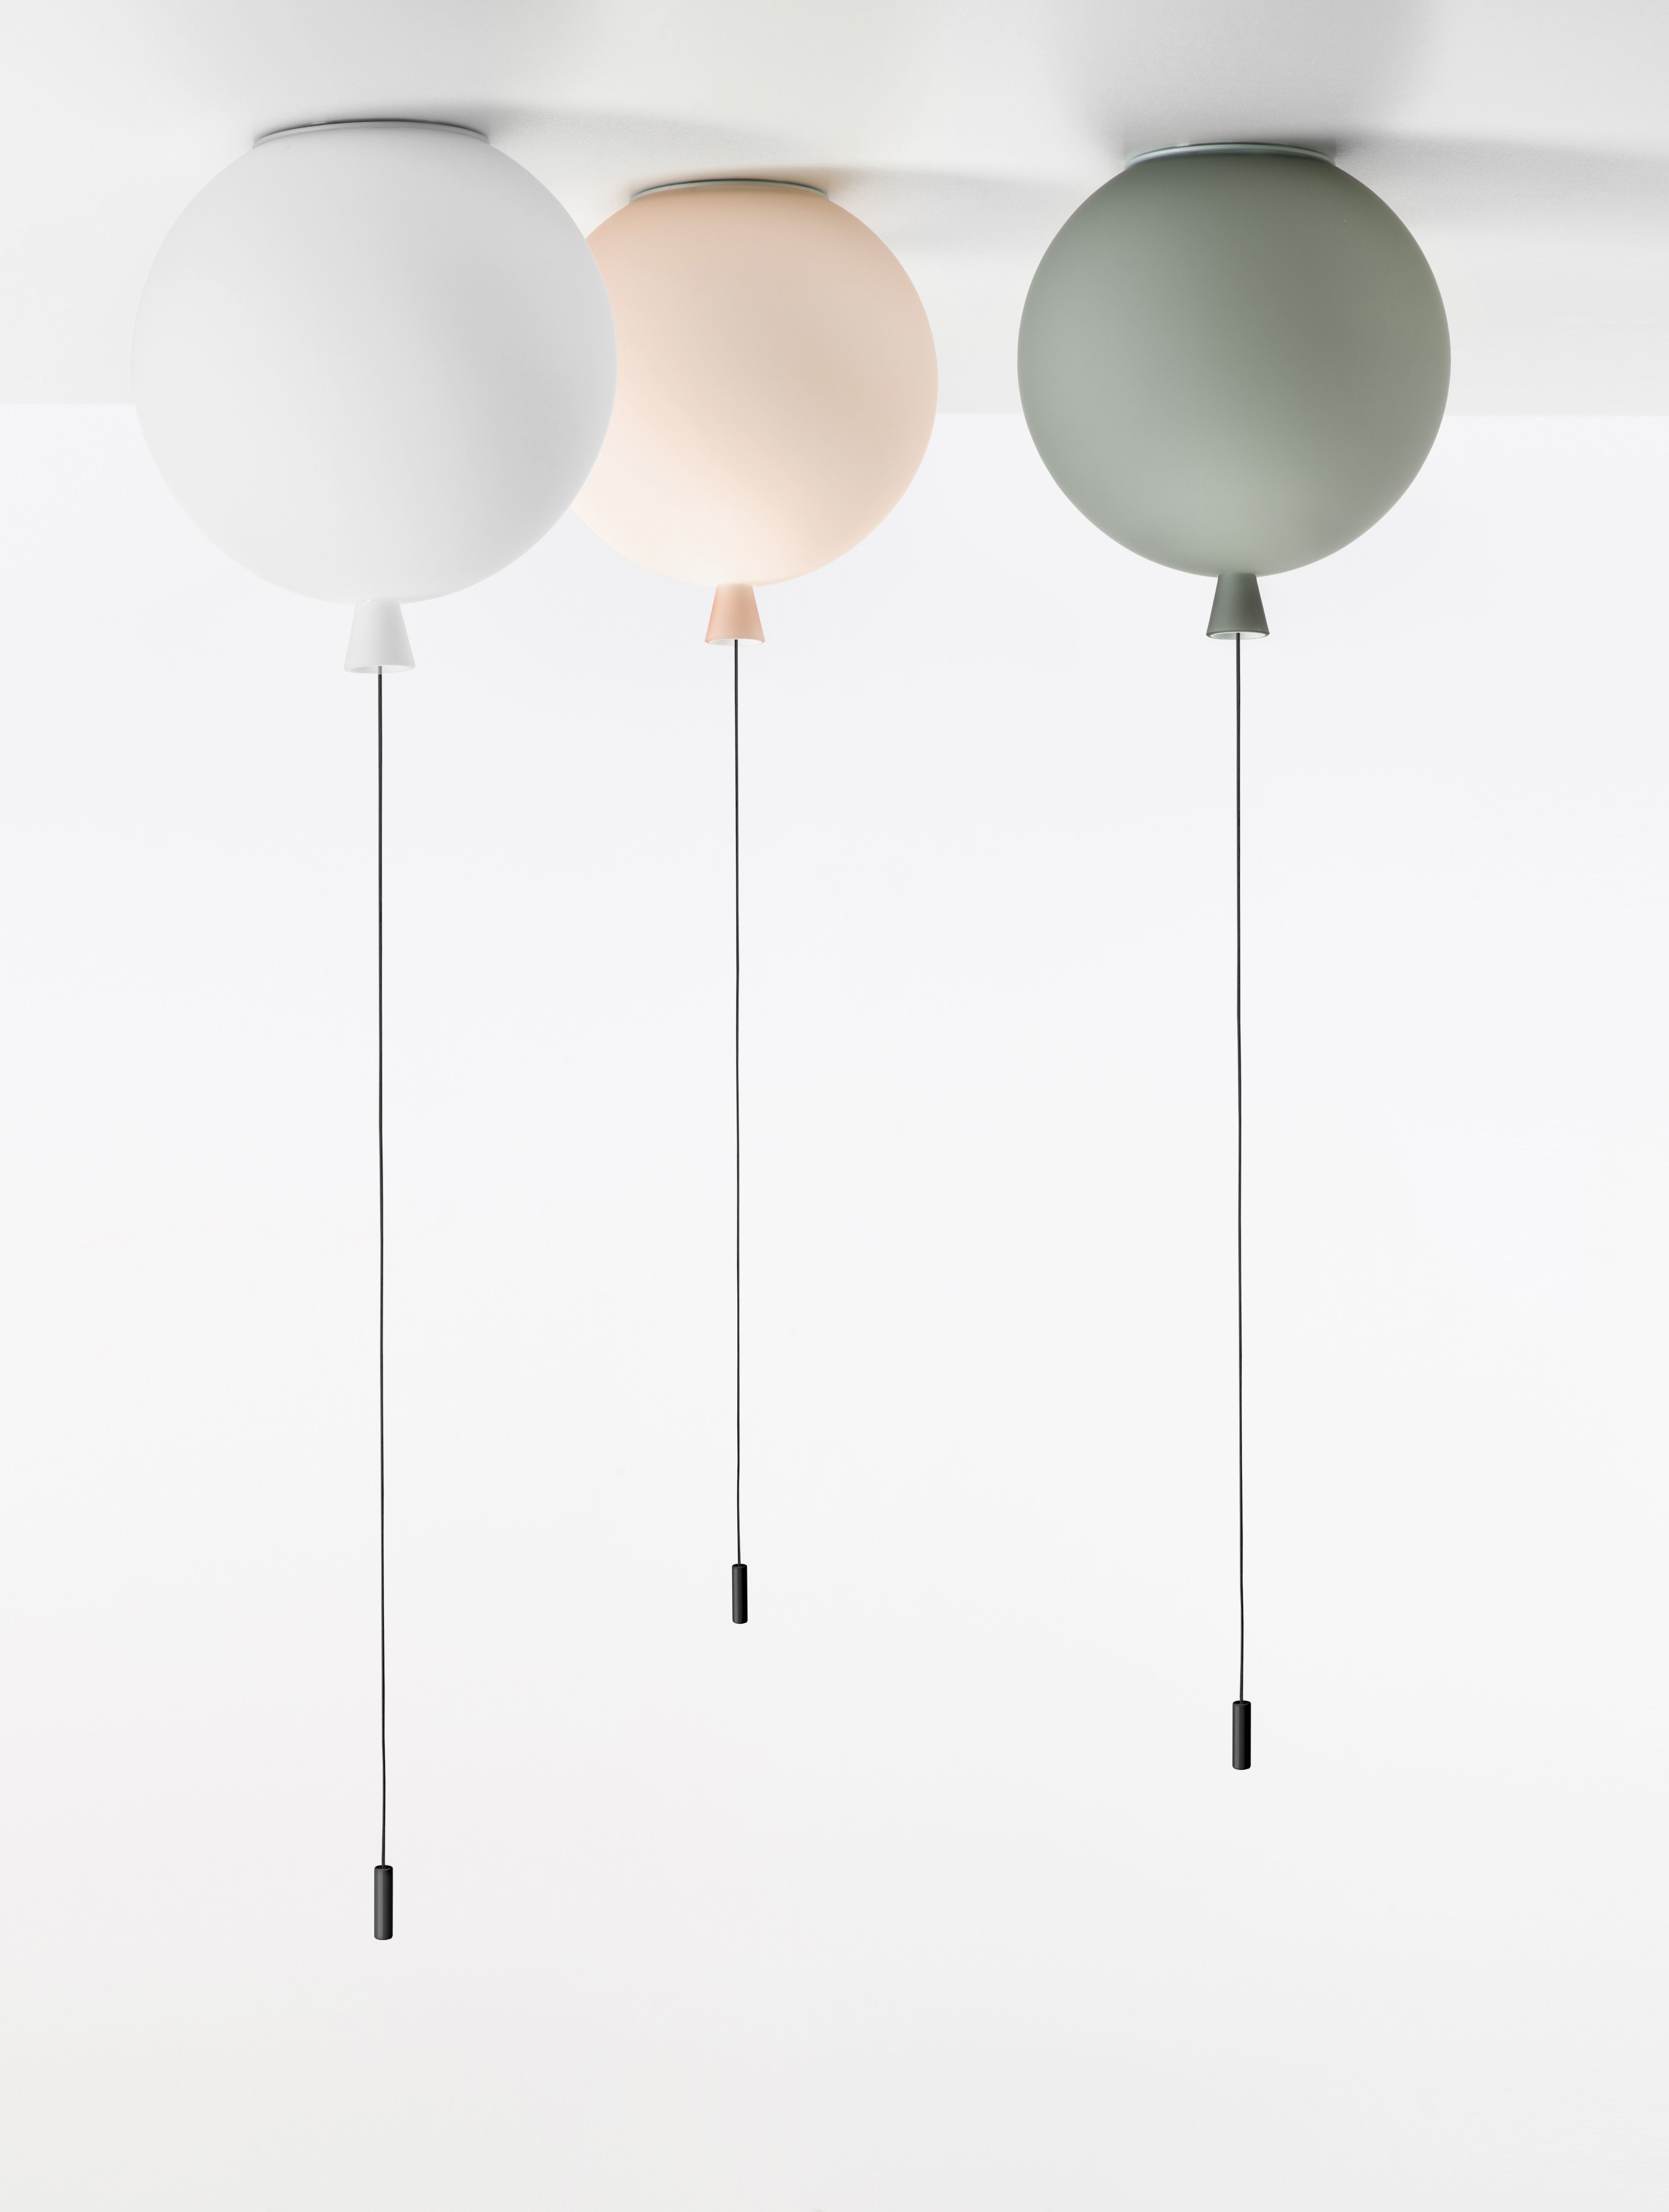 white interior brokis lights white pink and grey matt balloons memory are hanging lights. Black Bedroom Furniture Sets. Home Design Ideas